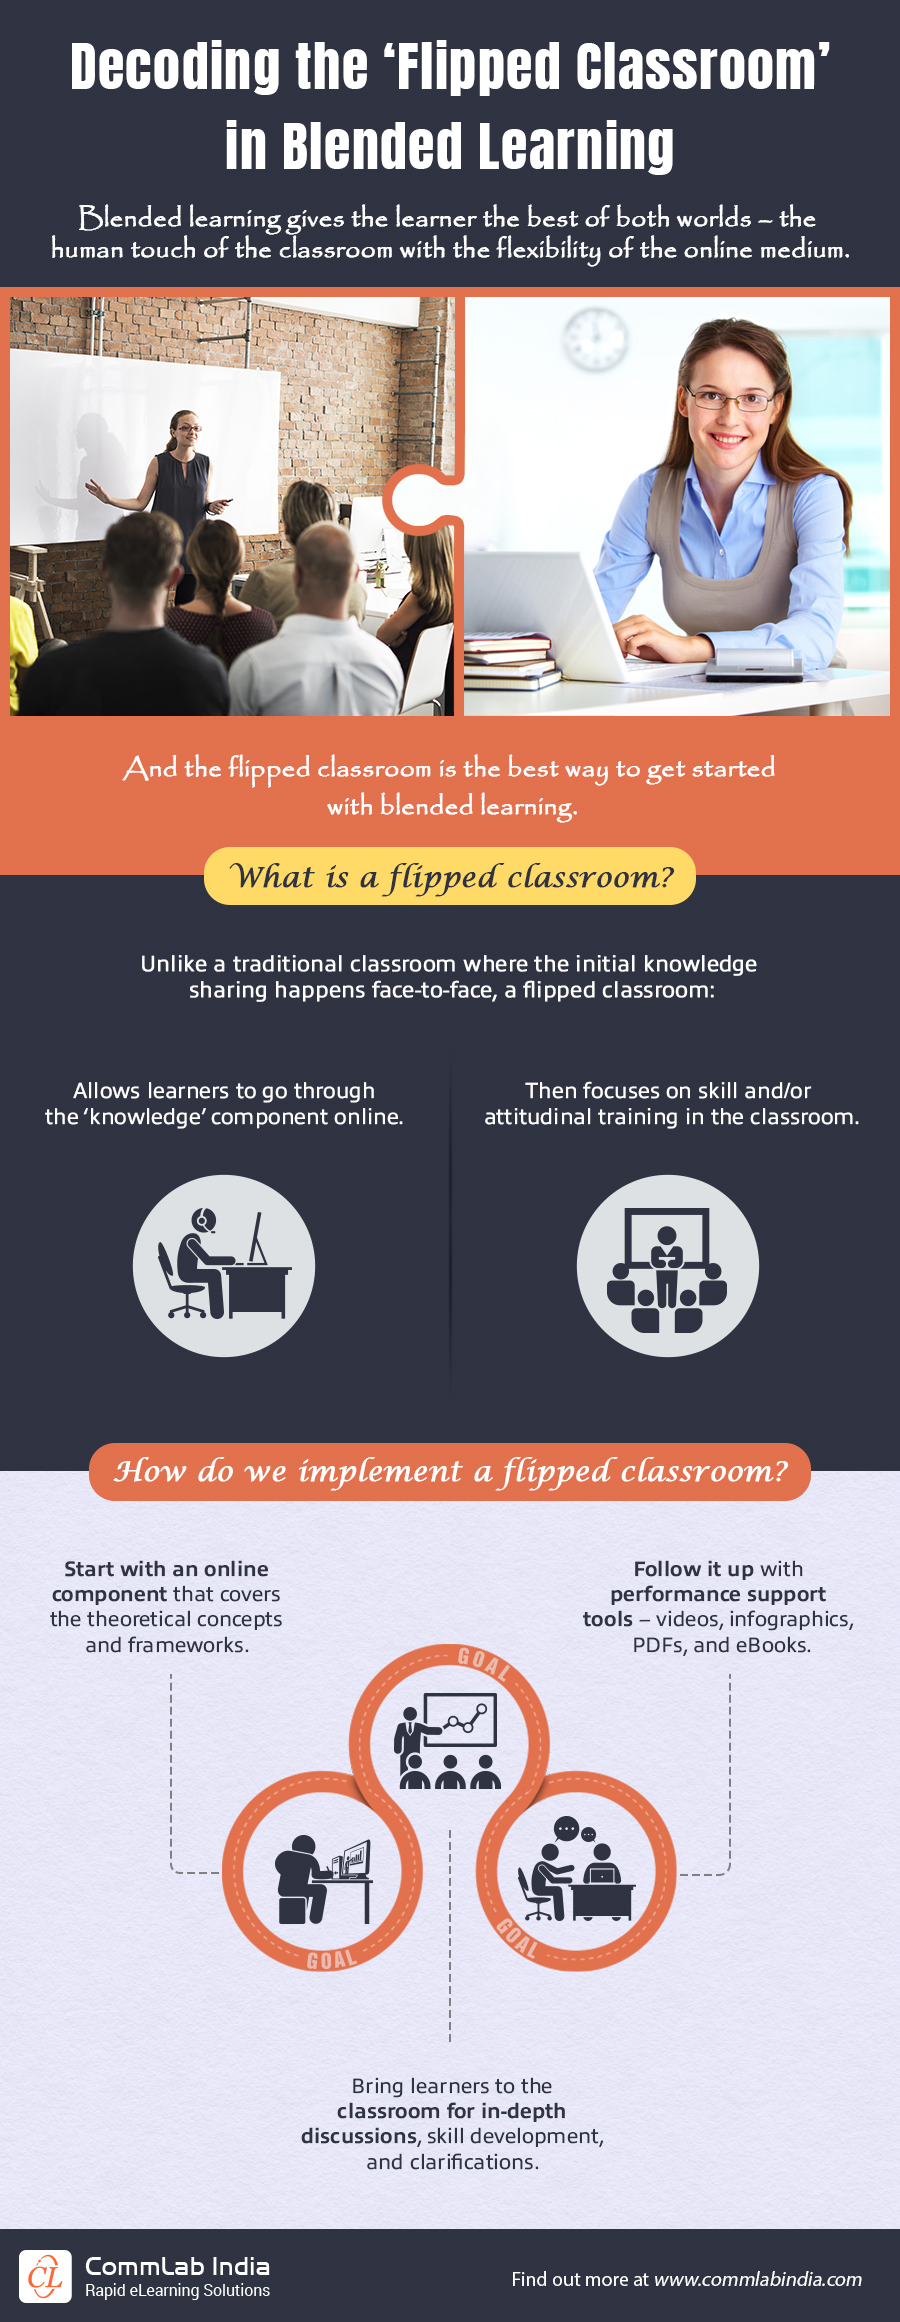 Blended Learning and the Use of a Flipped Classroom Decoded